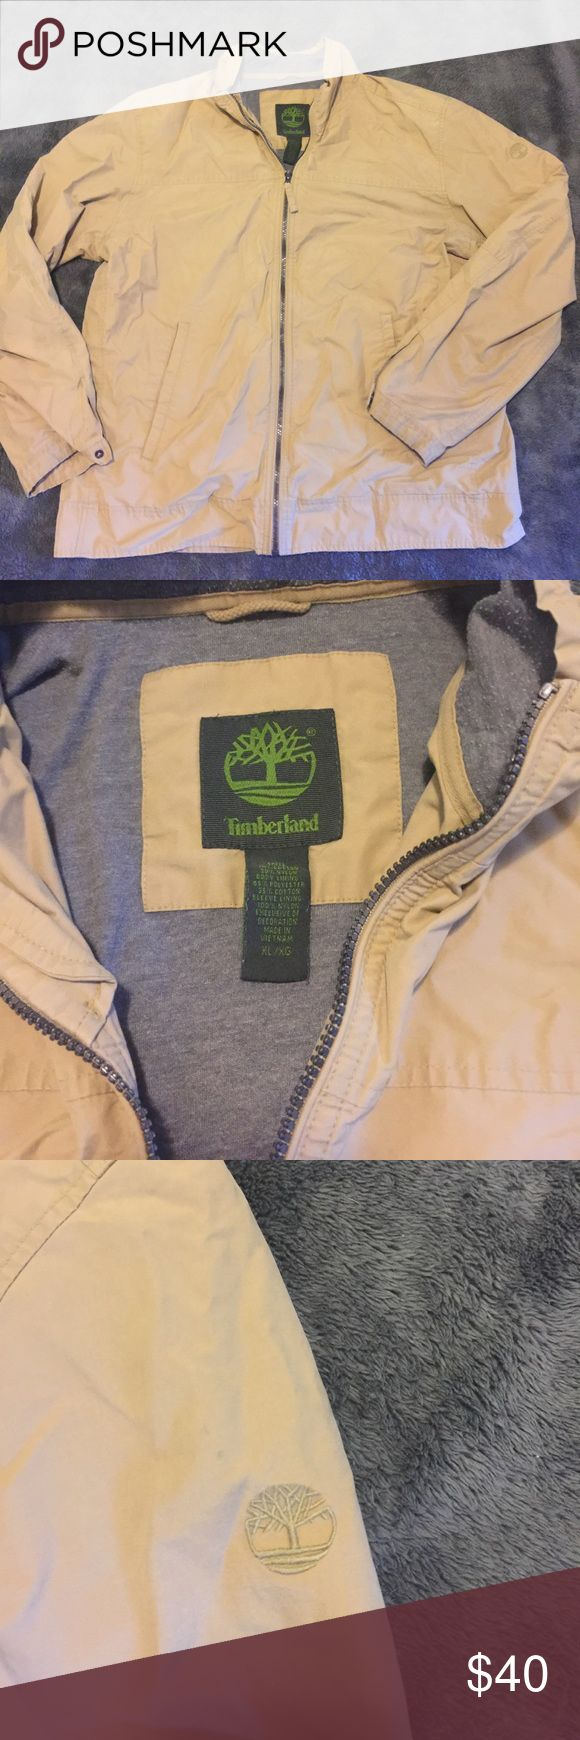 Timberland jacket. Men's XL Really nice tan Timberland jacket. Men's size XL. Great condition. Too small for me. ☹️🌲🌲 Timberland Jackets & Coats Lightweight & Shirt Jackets